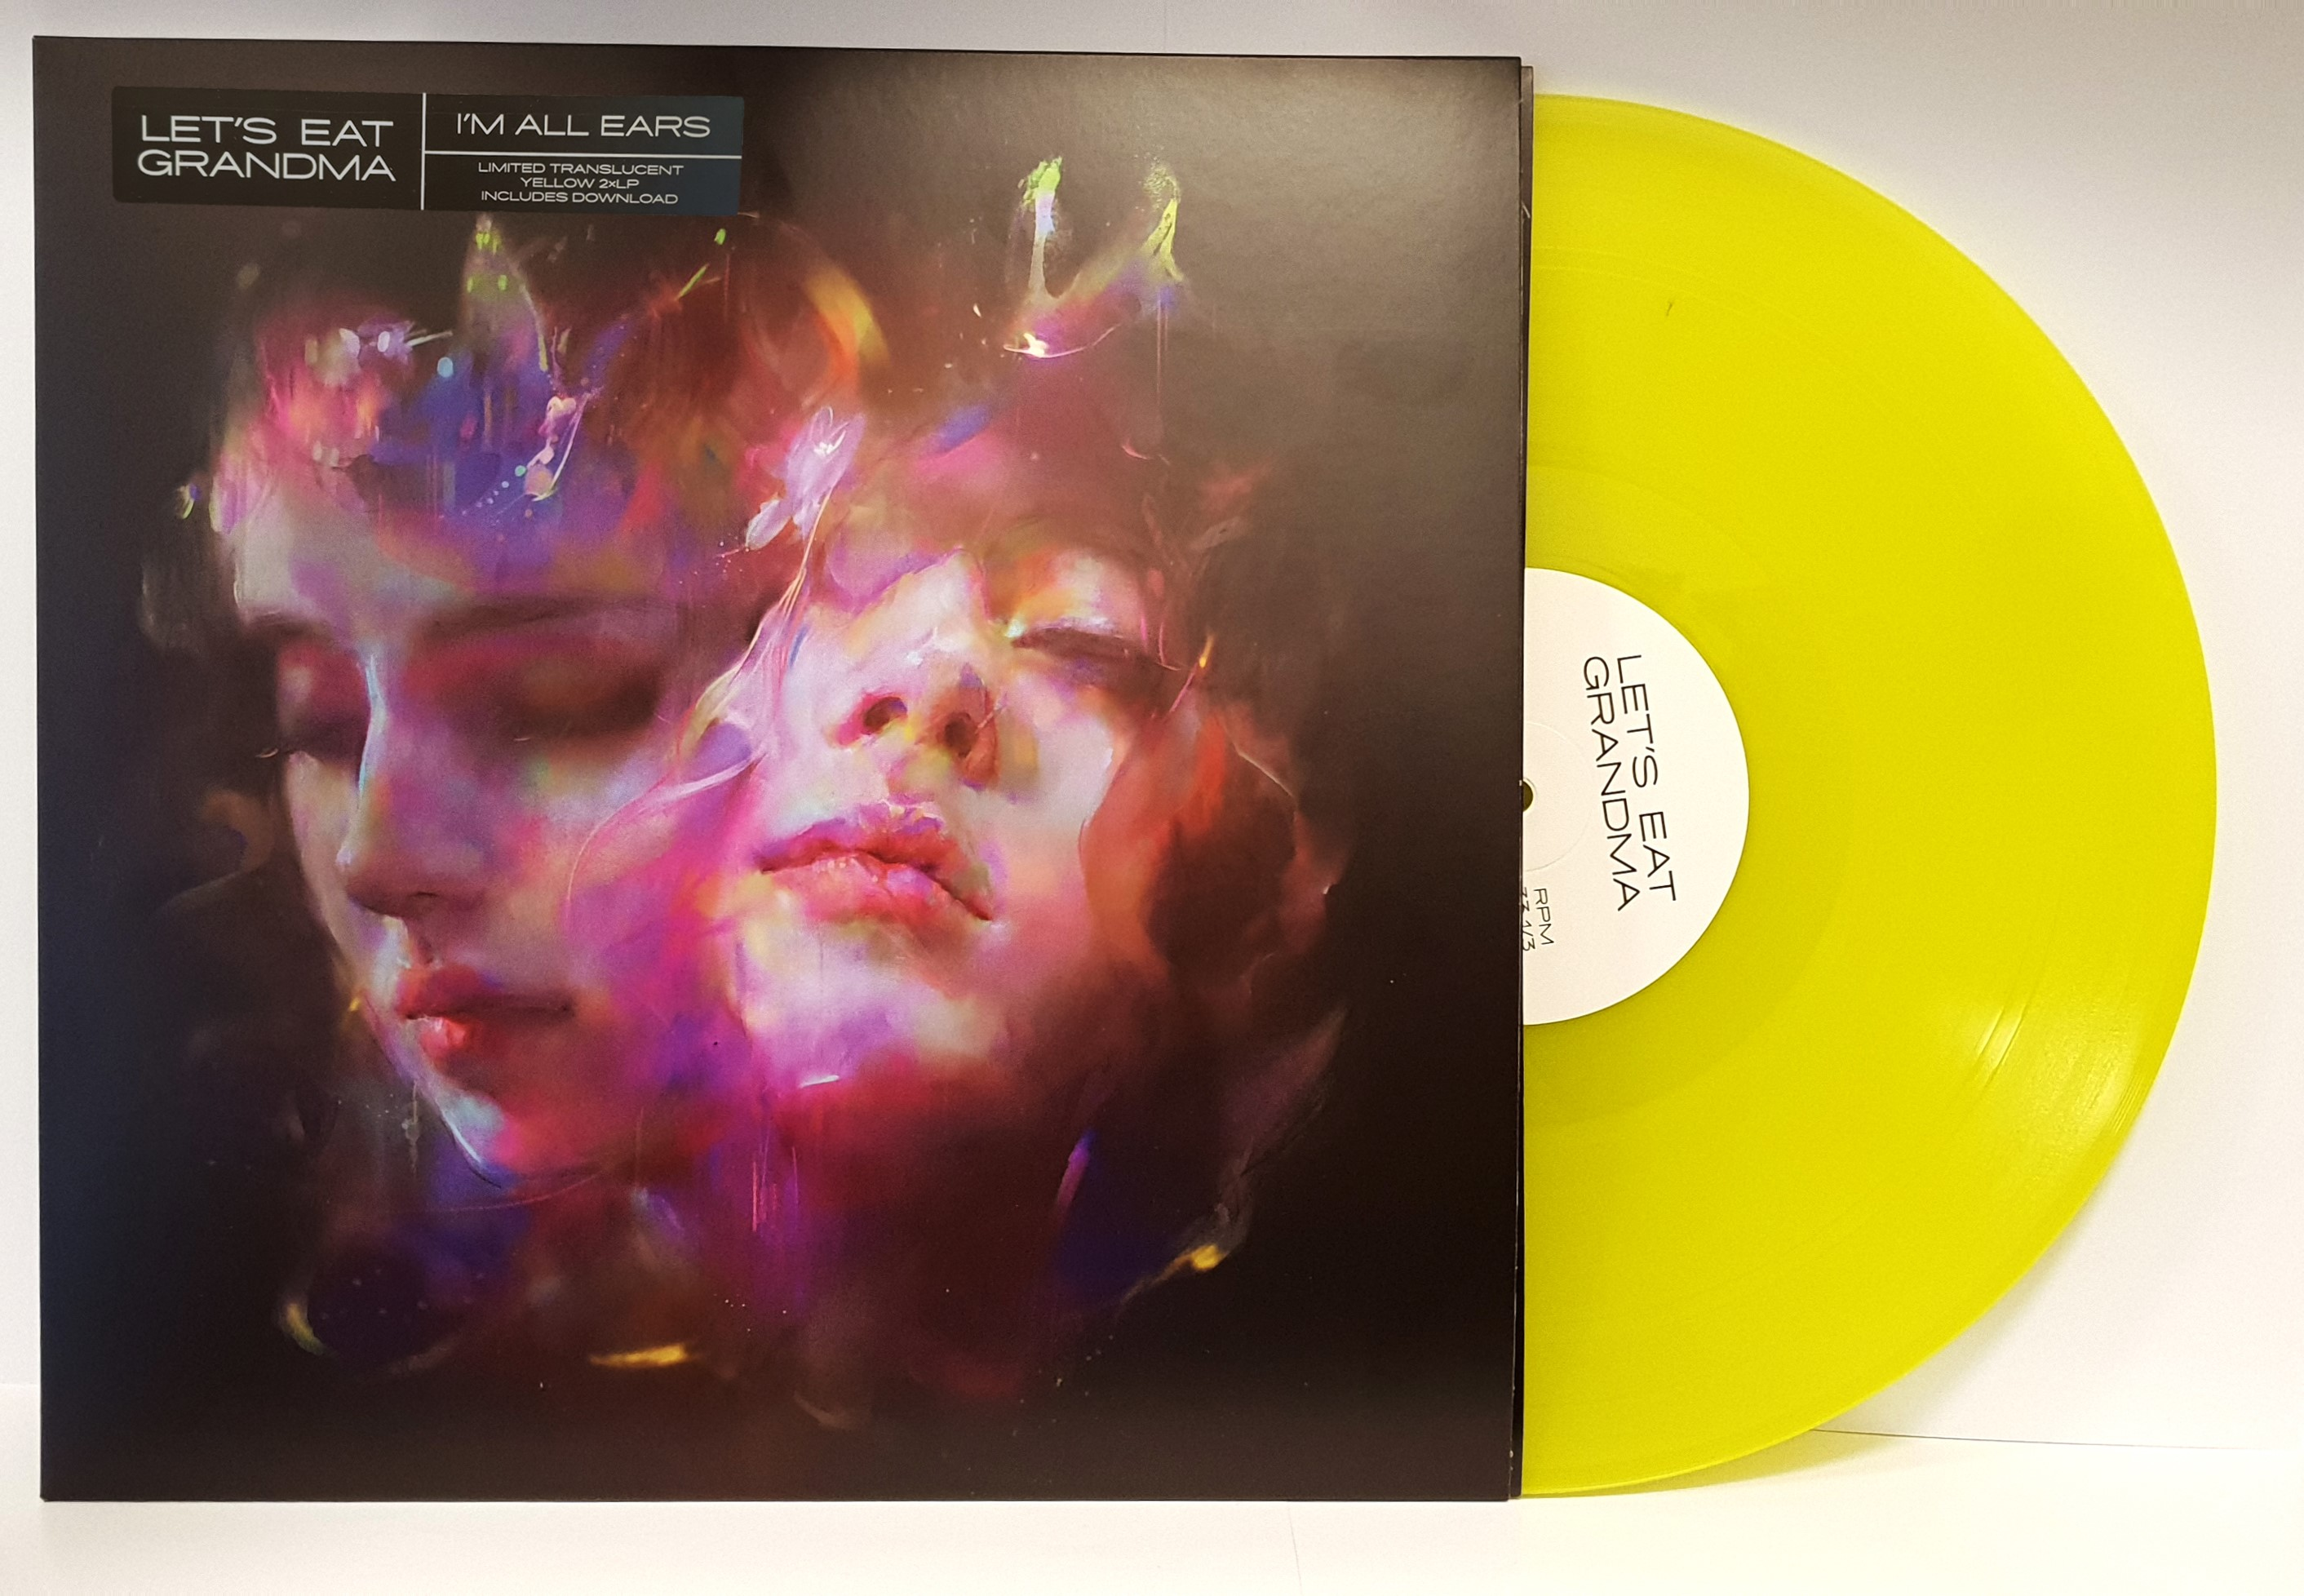 Let's Eat Grandma - I'm All Ears [Indie Exclusive Translucent Yellow]